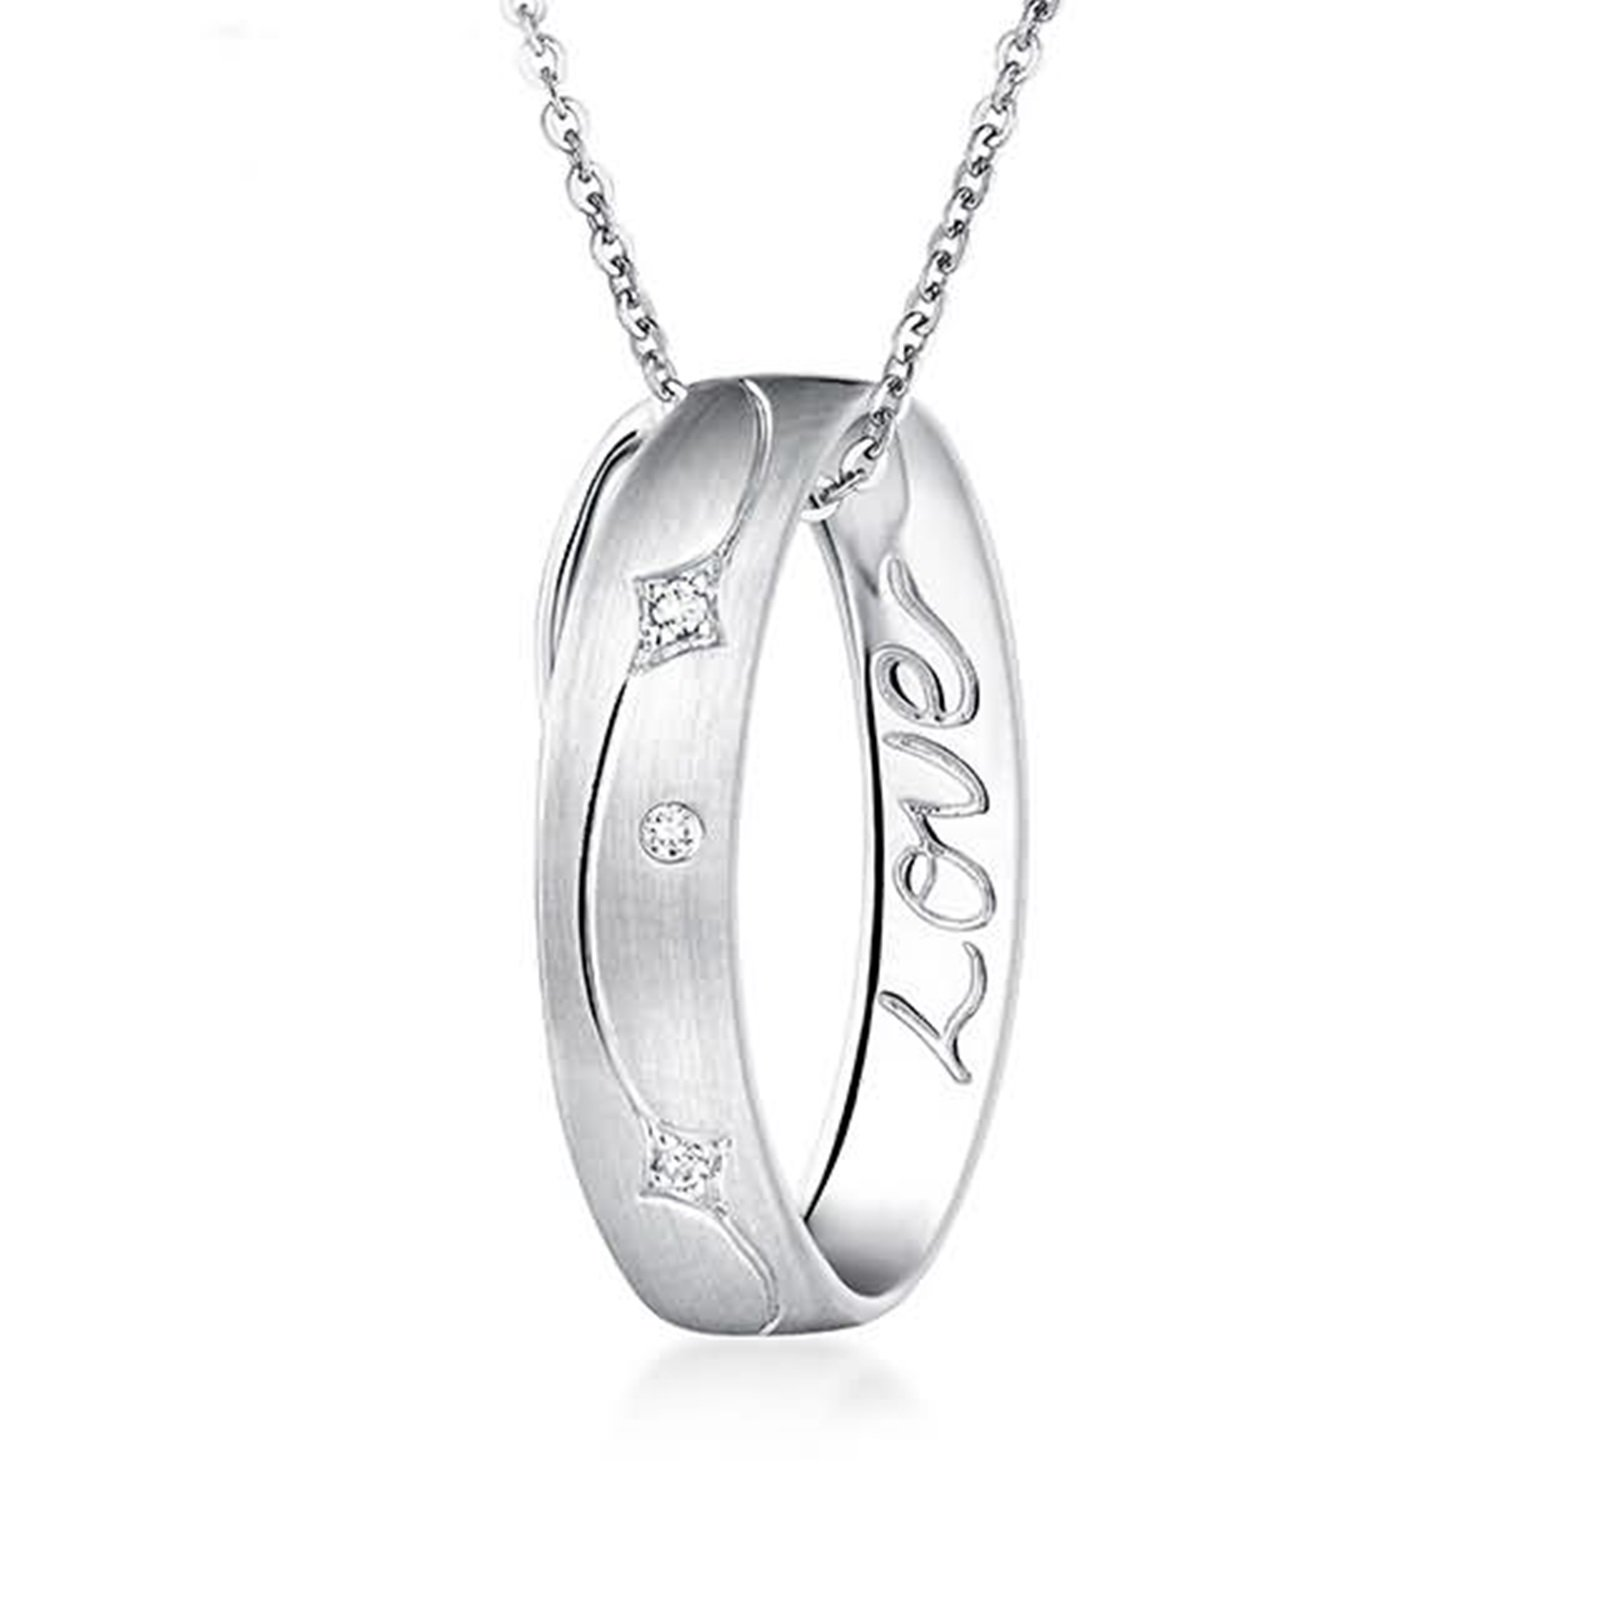 Adisaer 18k(750) White Gold Women Necklace Ring Engraved '' Love'' Pendant Round Diamond Wedding Necklace